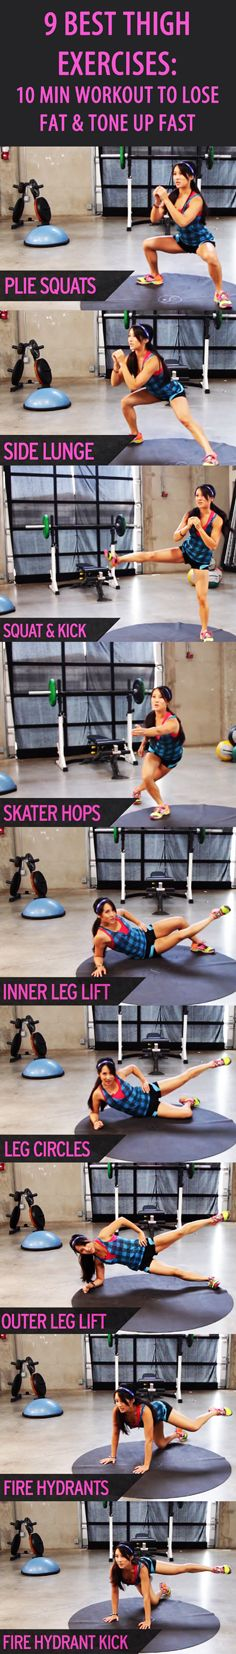 Looking to strengthen and sculpt your legs with these great workouts!